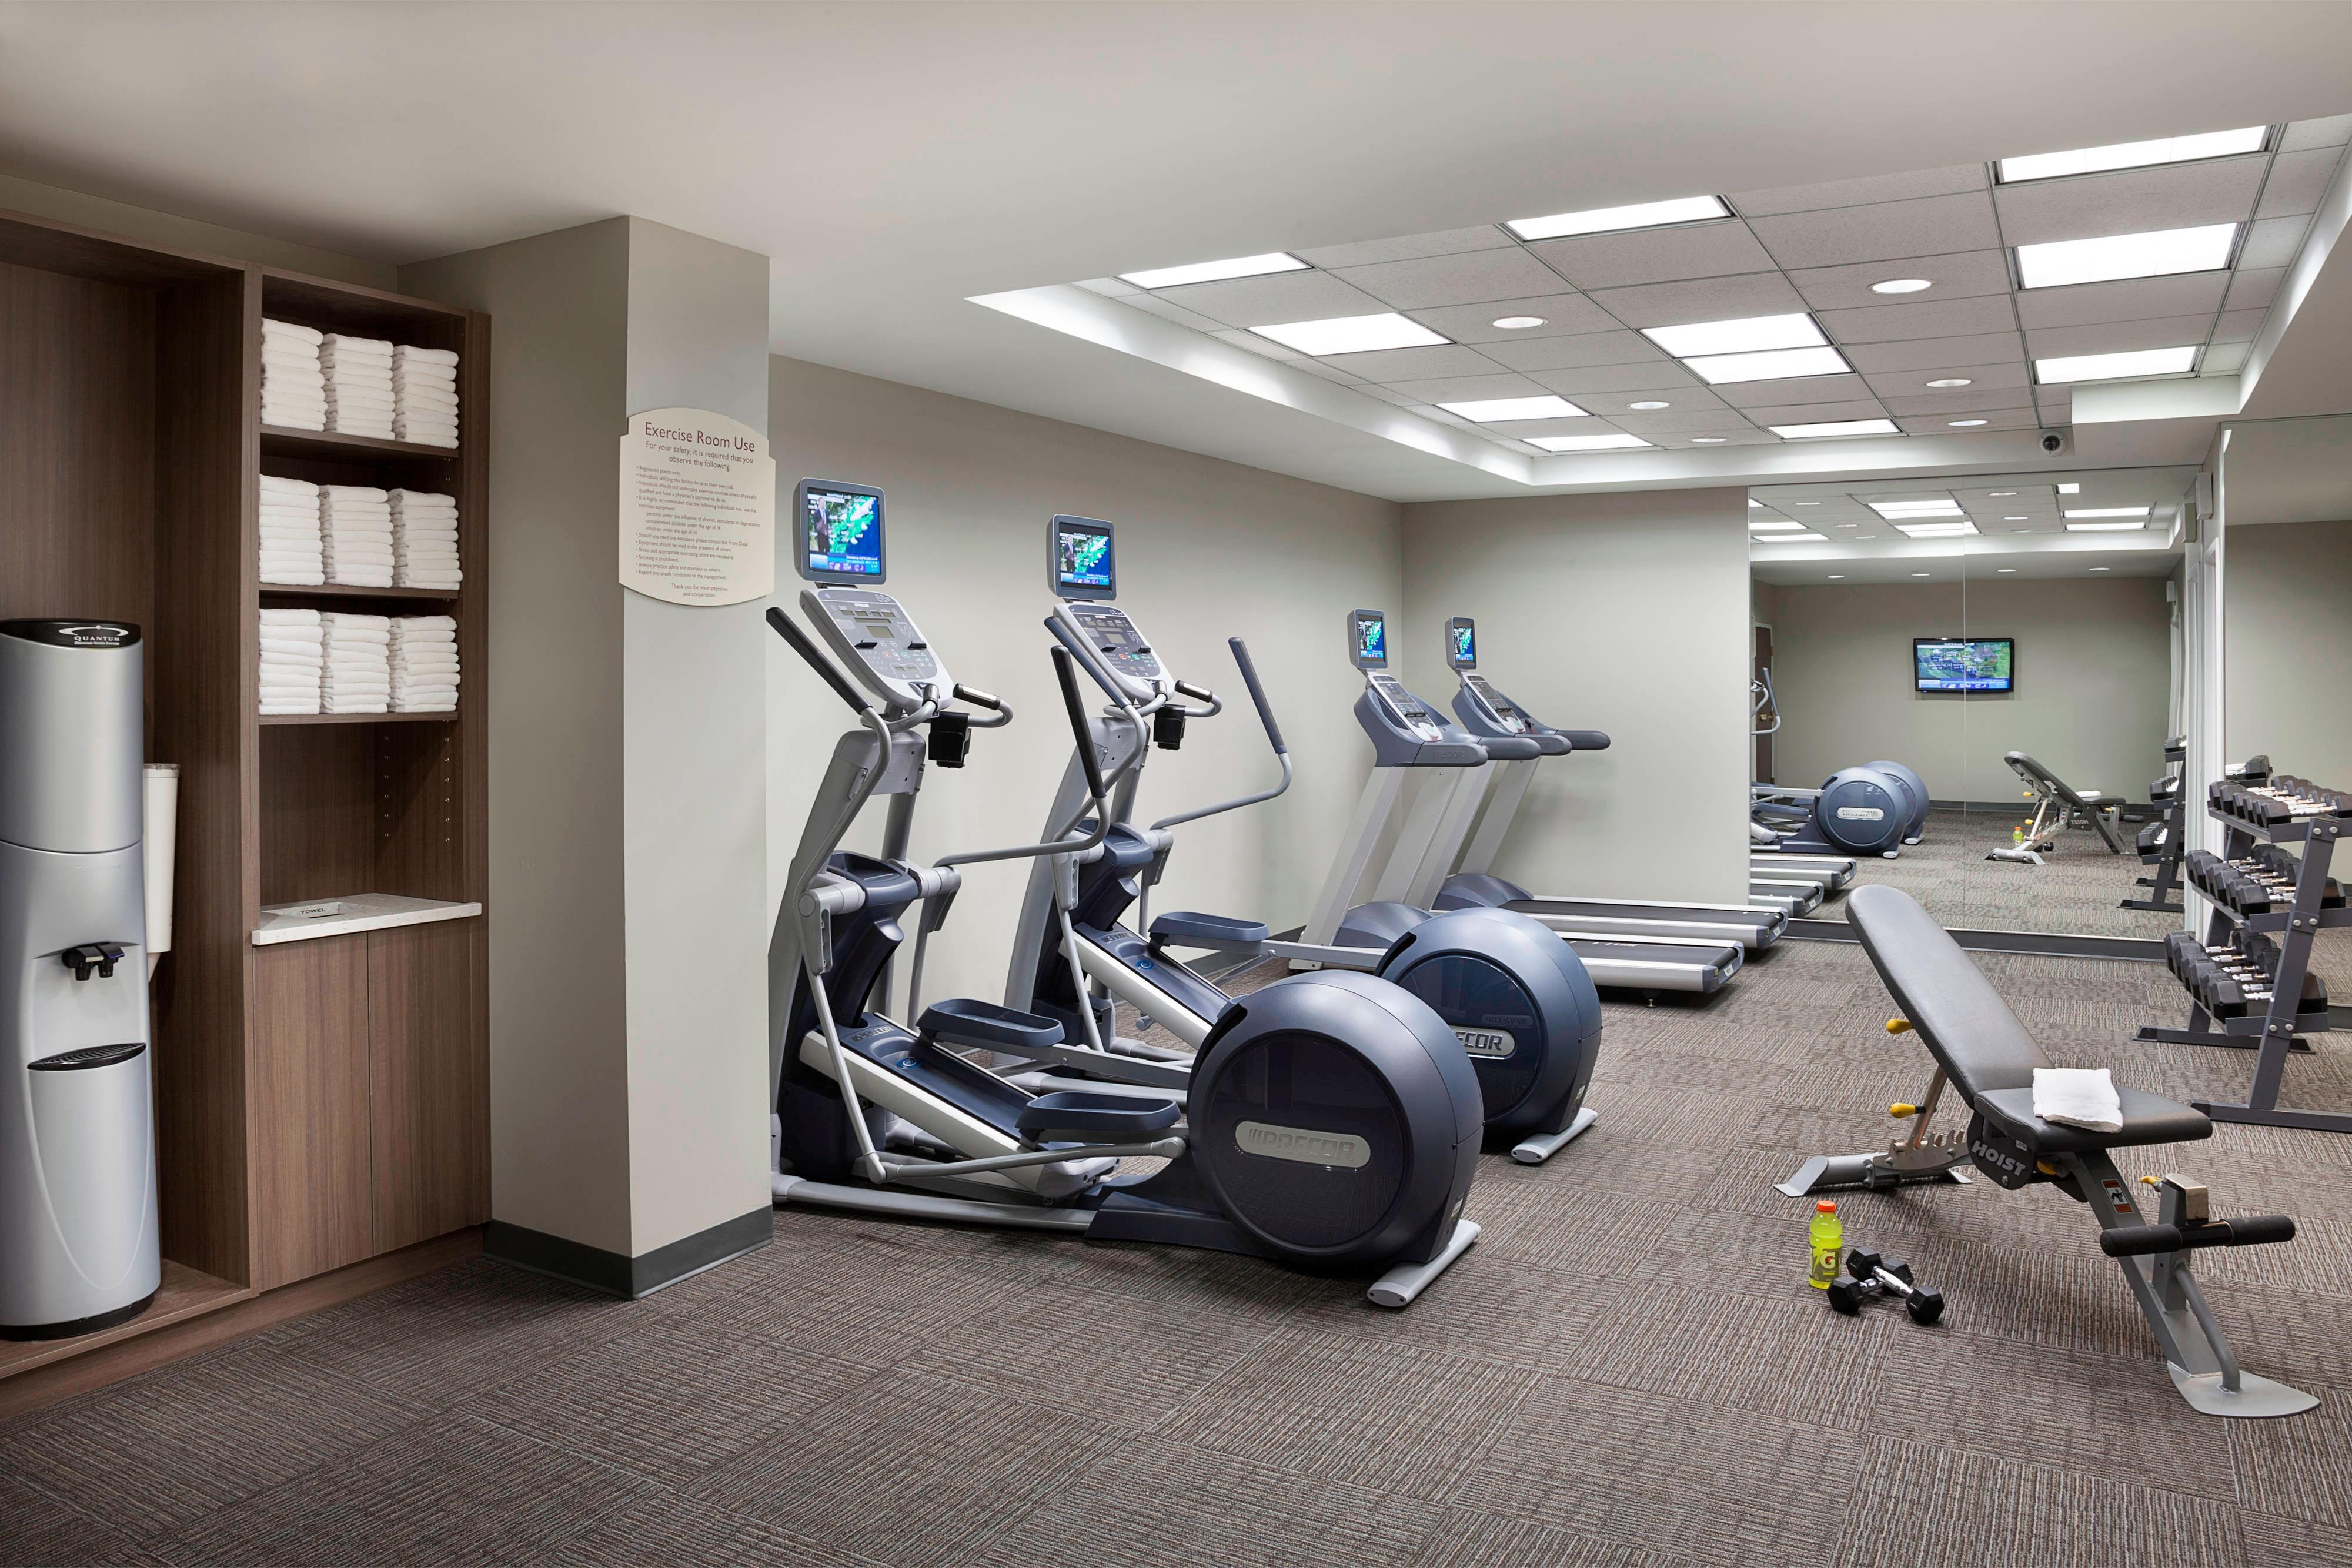 Residence Inn Toronto Airport Exercise Room